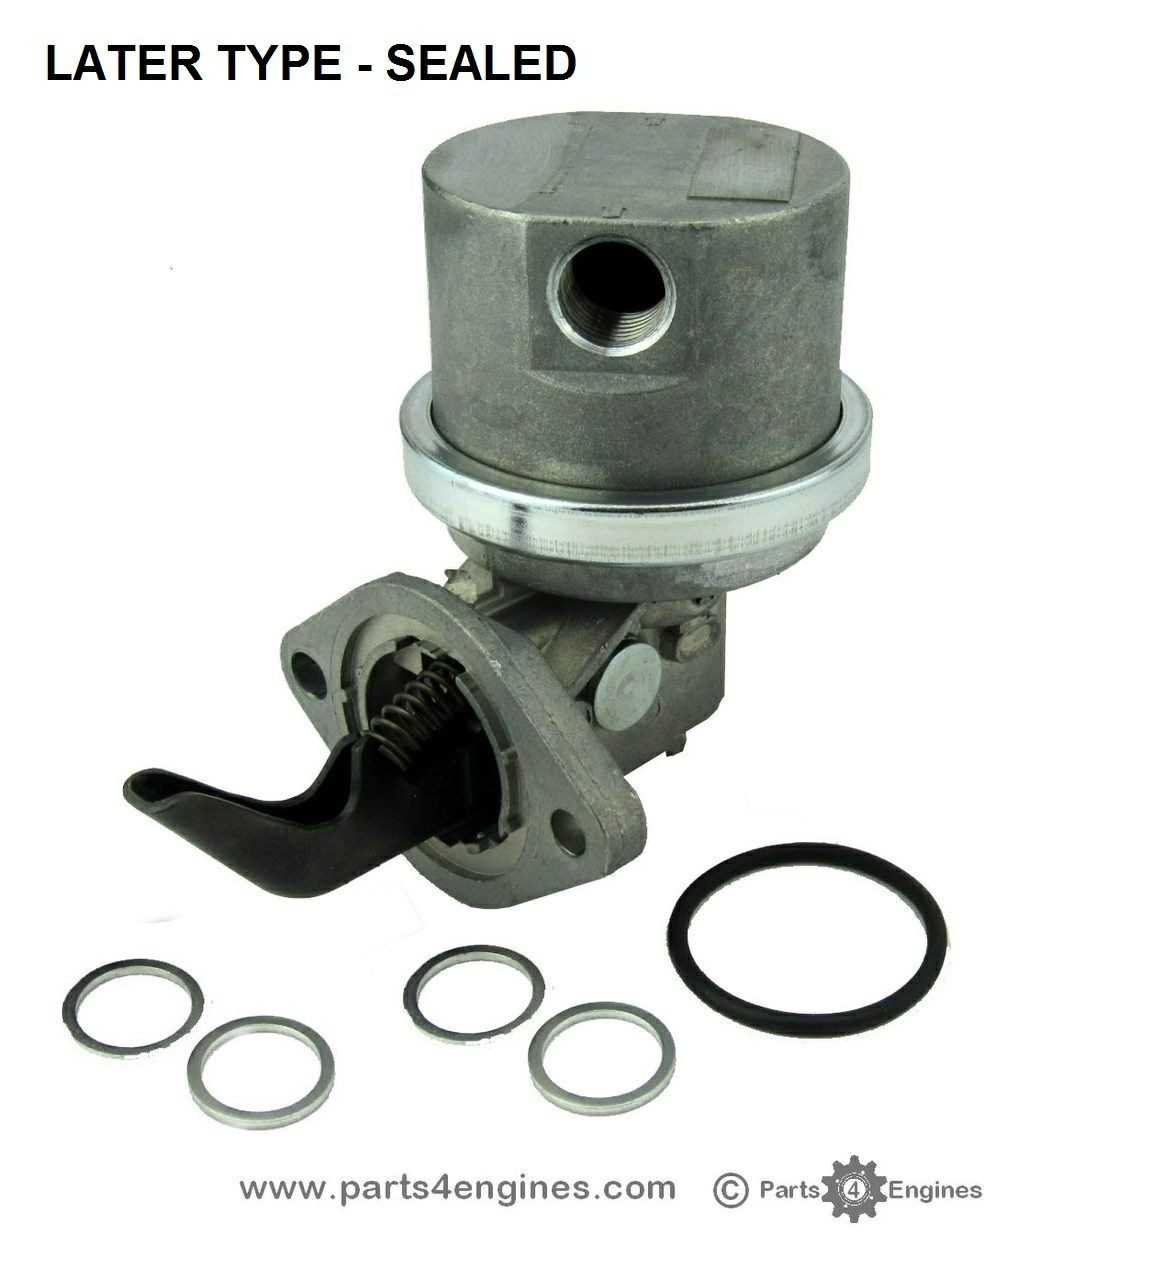 Volvo Penta 2003 fuel lift pump later from Parts4engines.com